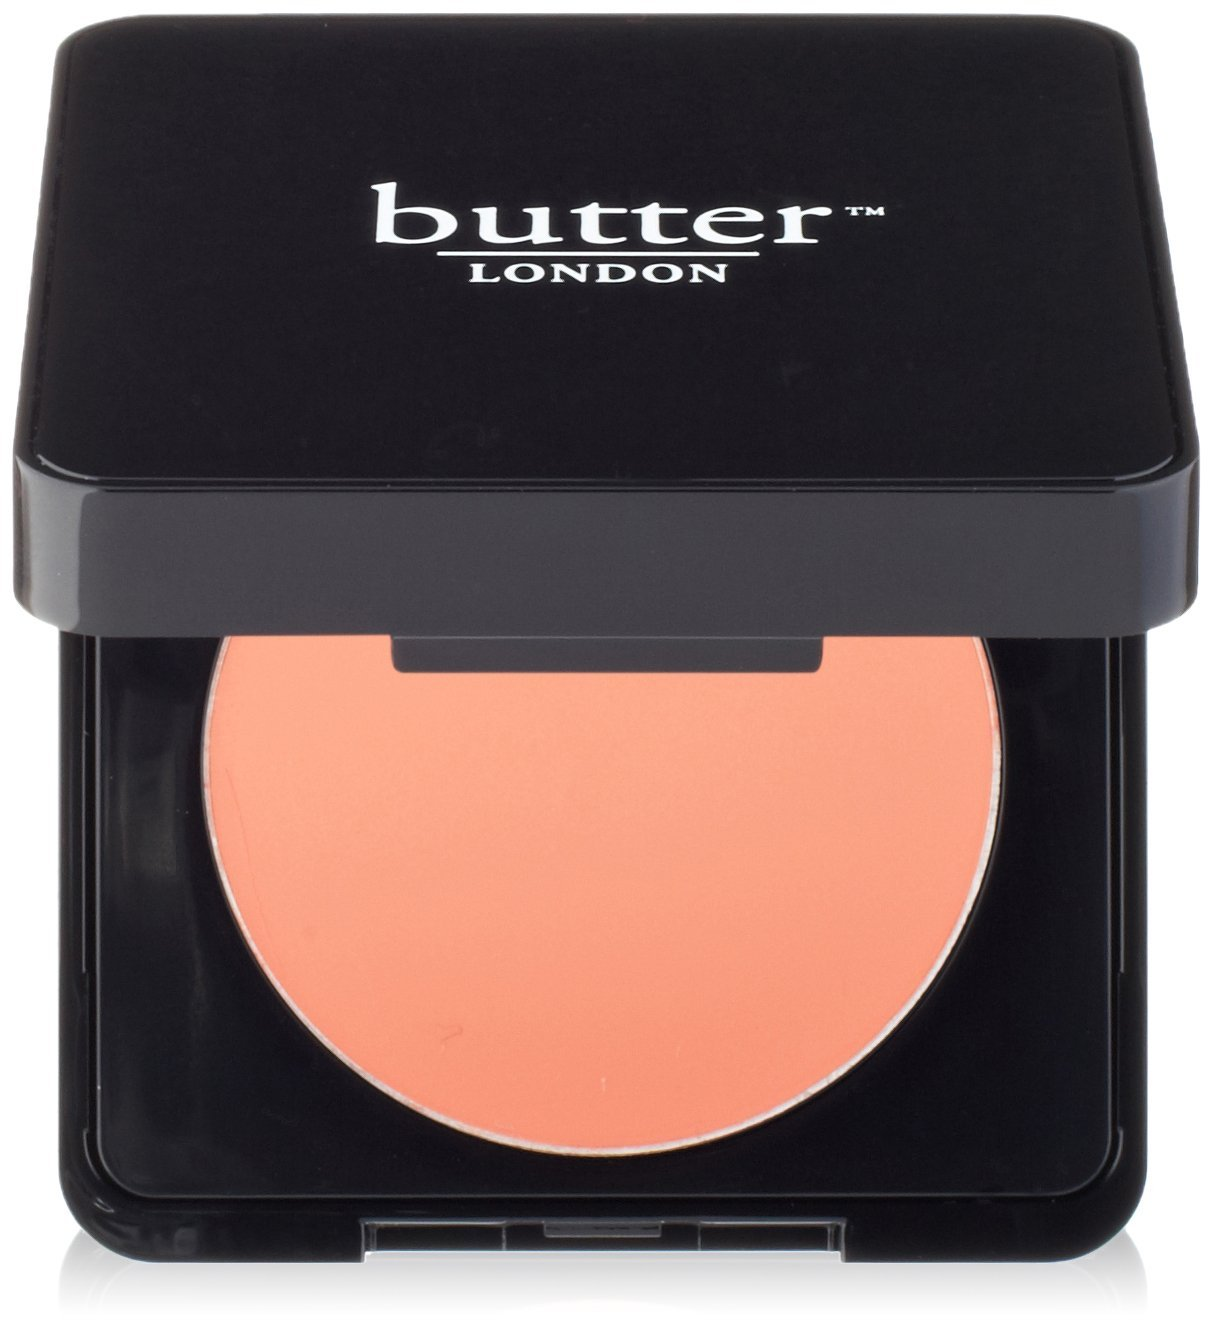 Butter London Cheeky Cream Blush Honey Pie 4g / 0.14oz - Walmart.com